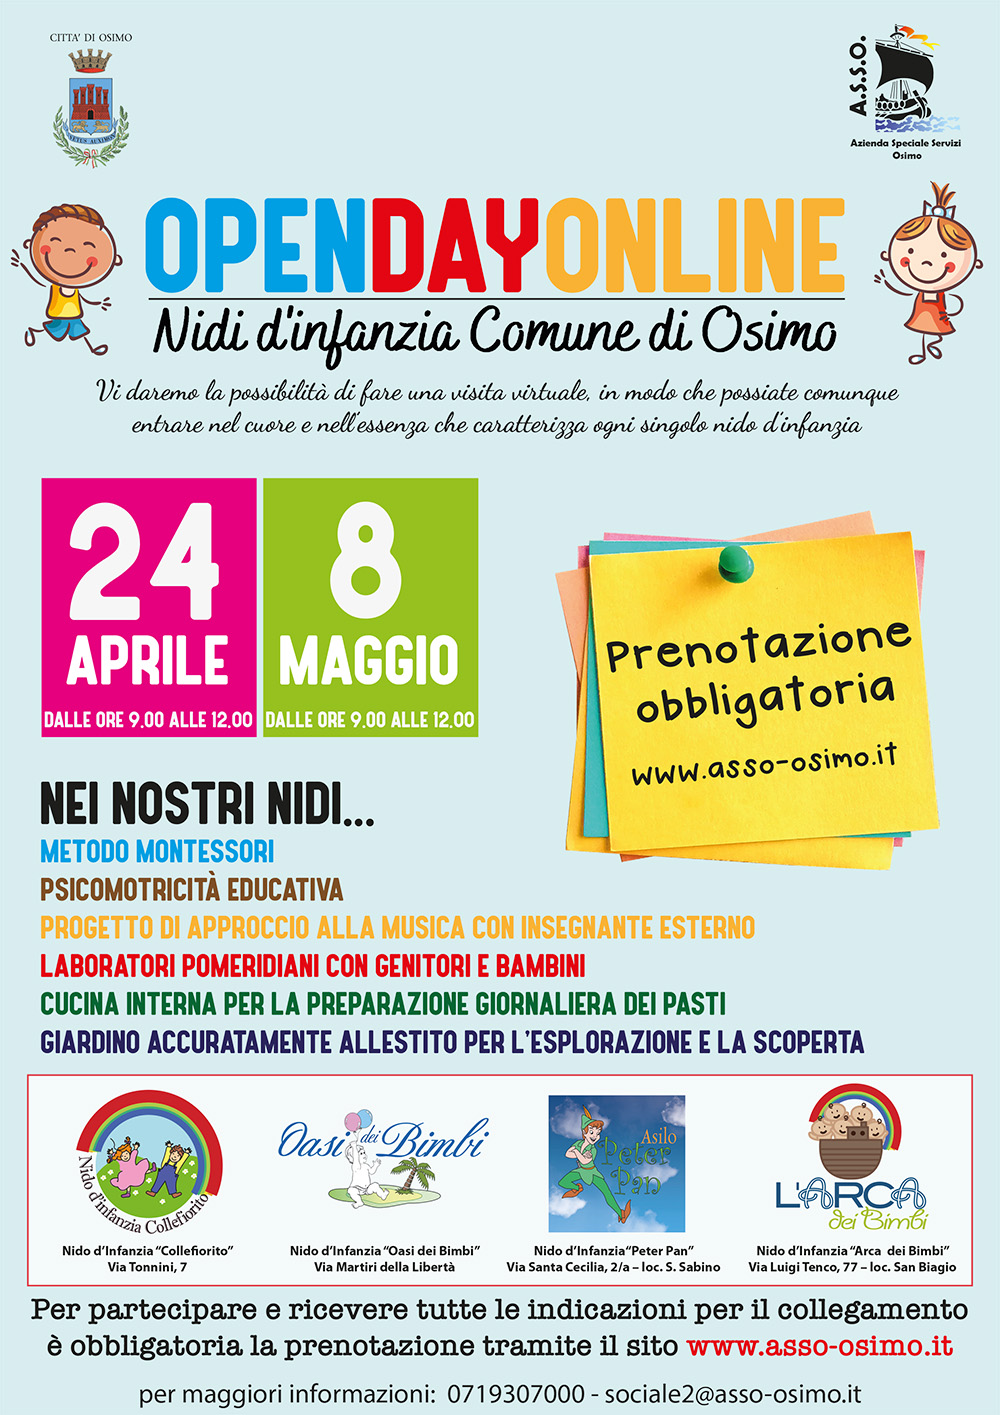 openday nidi 20211 copia